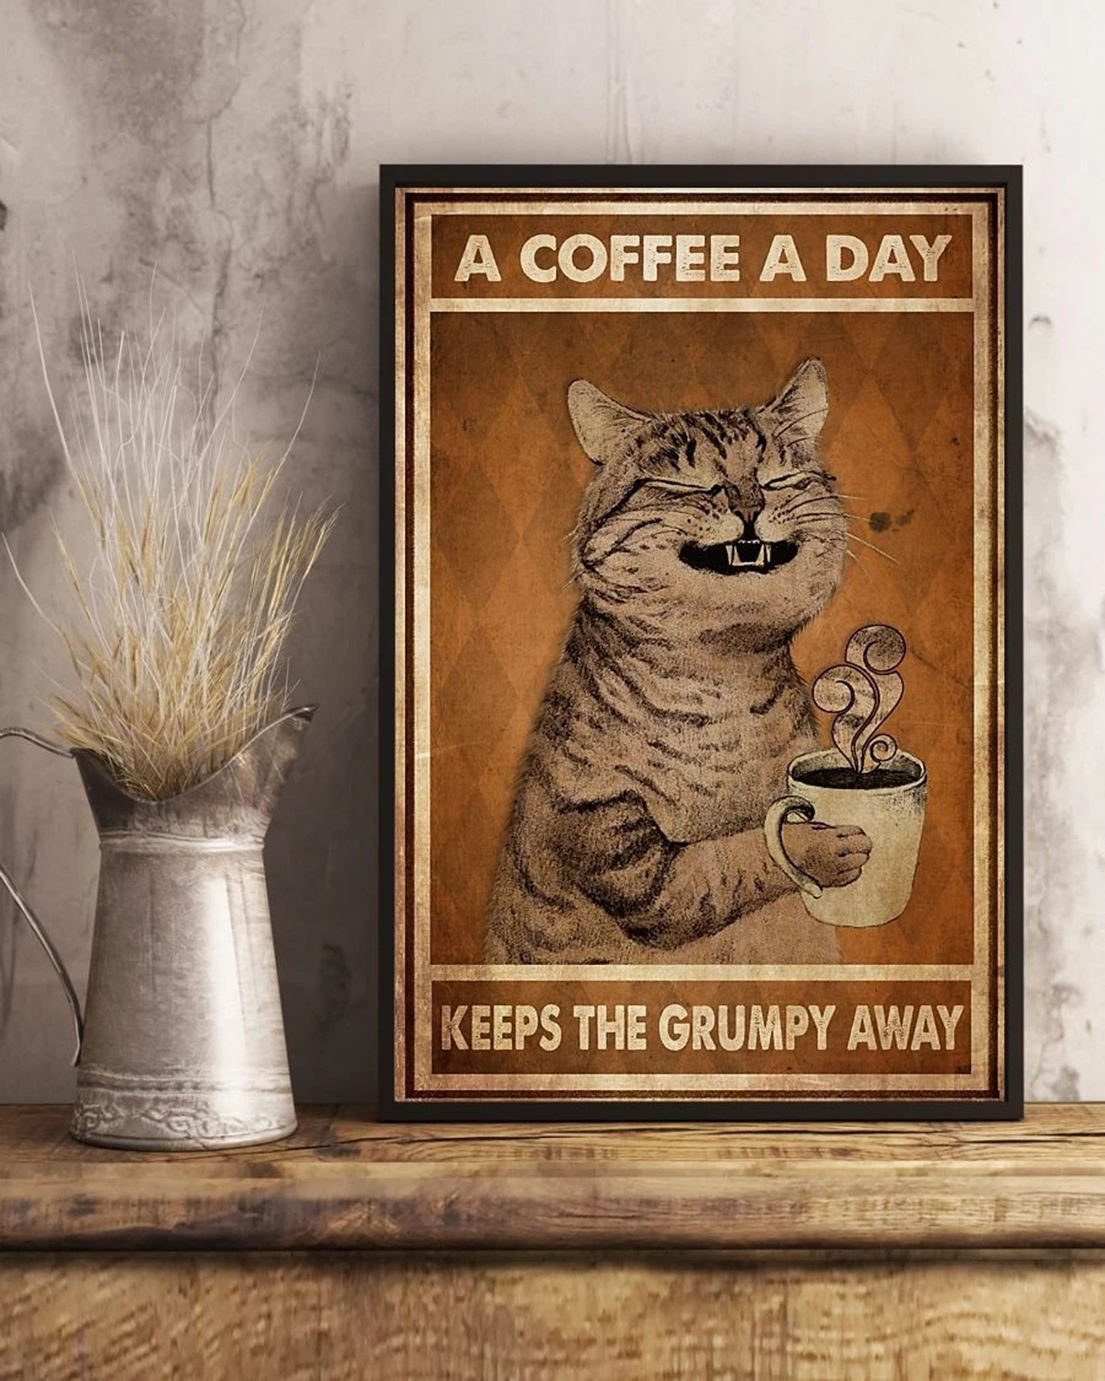 A coffee a day grumpy cat poster